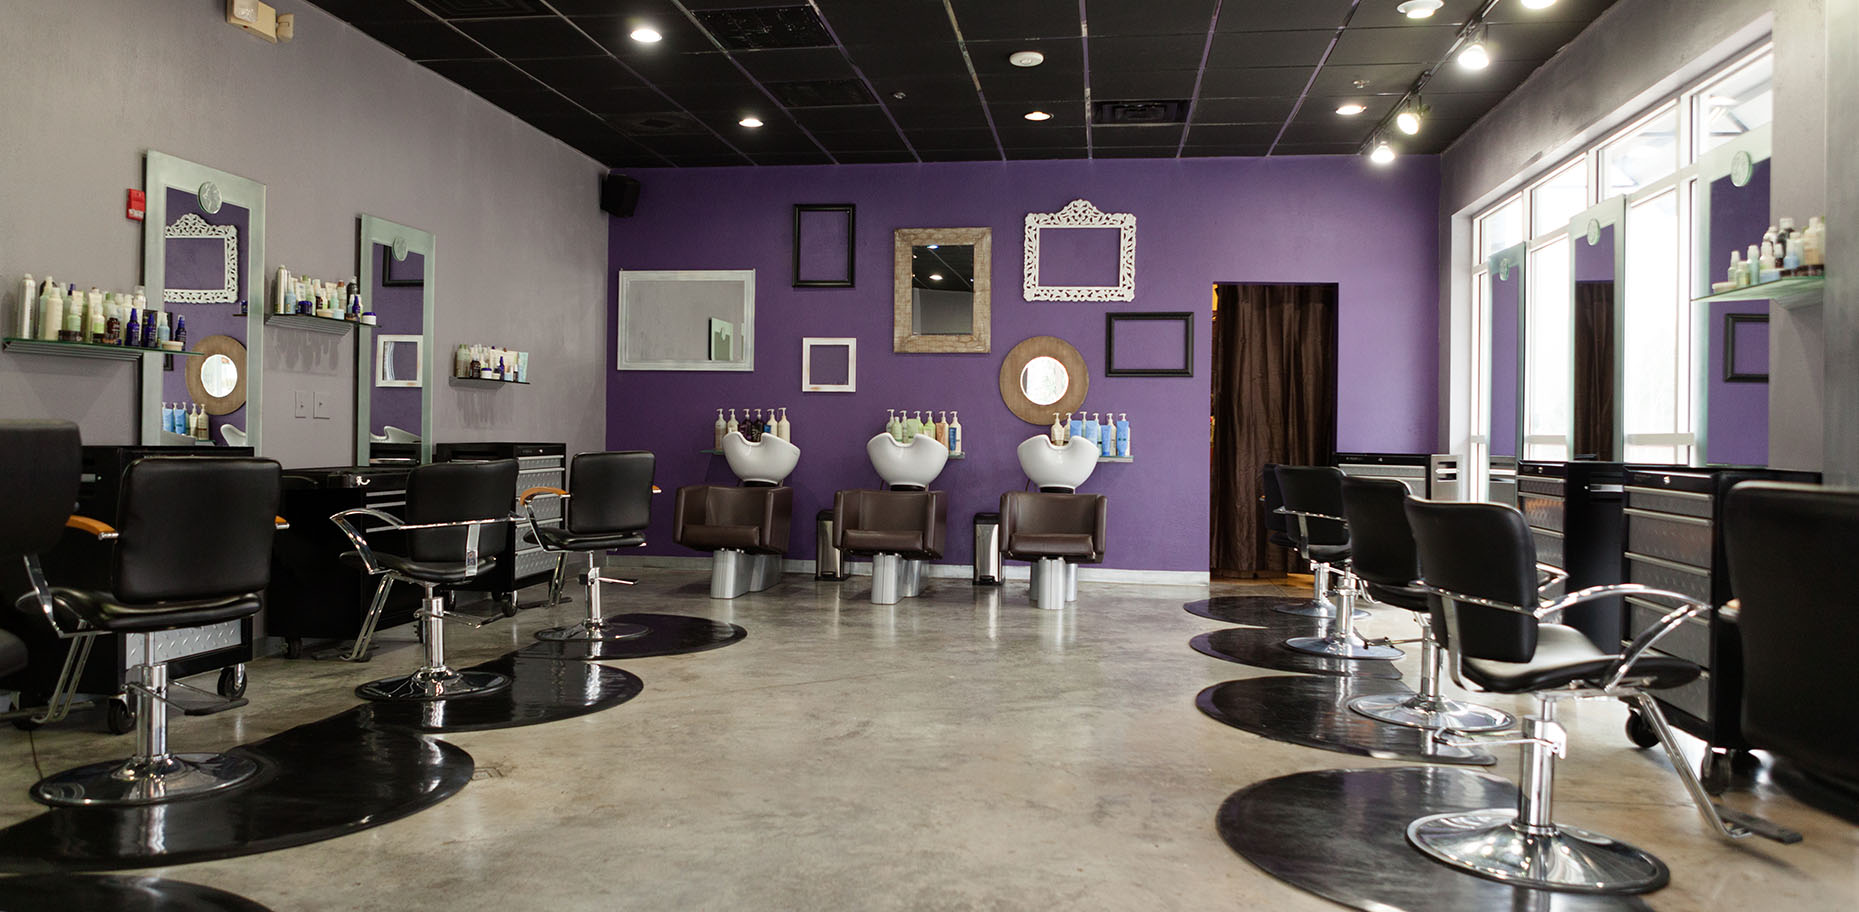 Salon 7 Tips For Finding A New Hair Salon Salon Price Lady